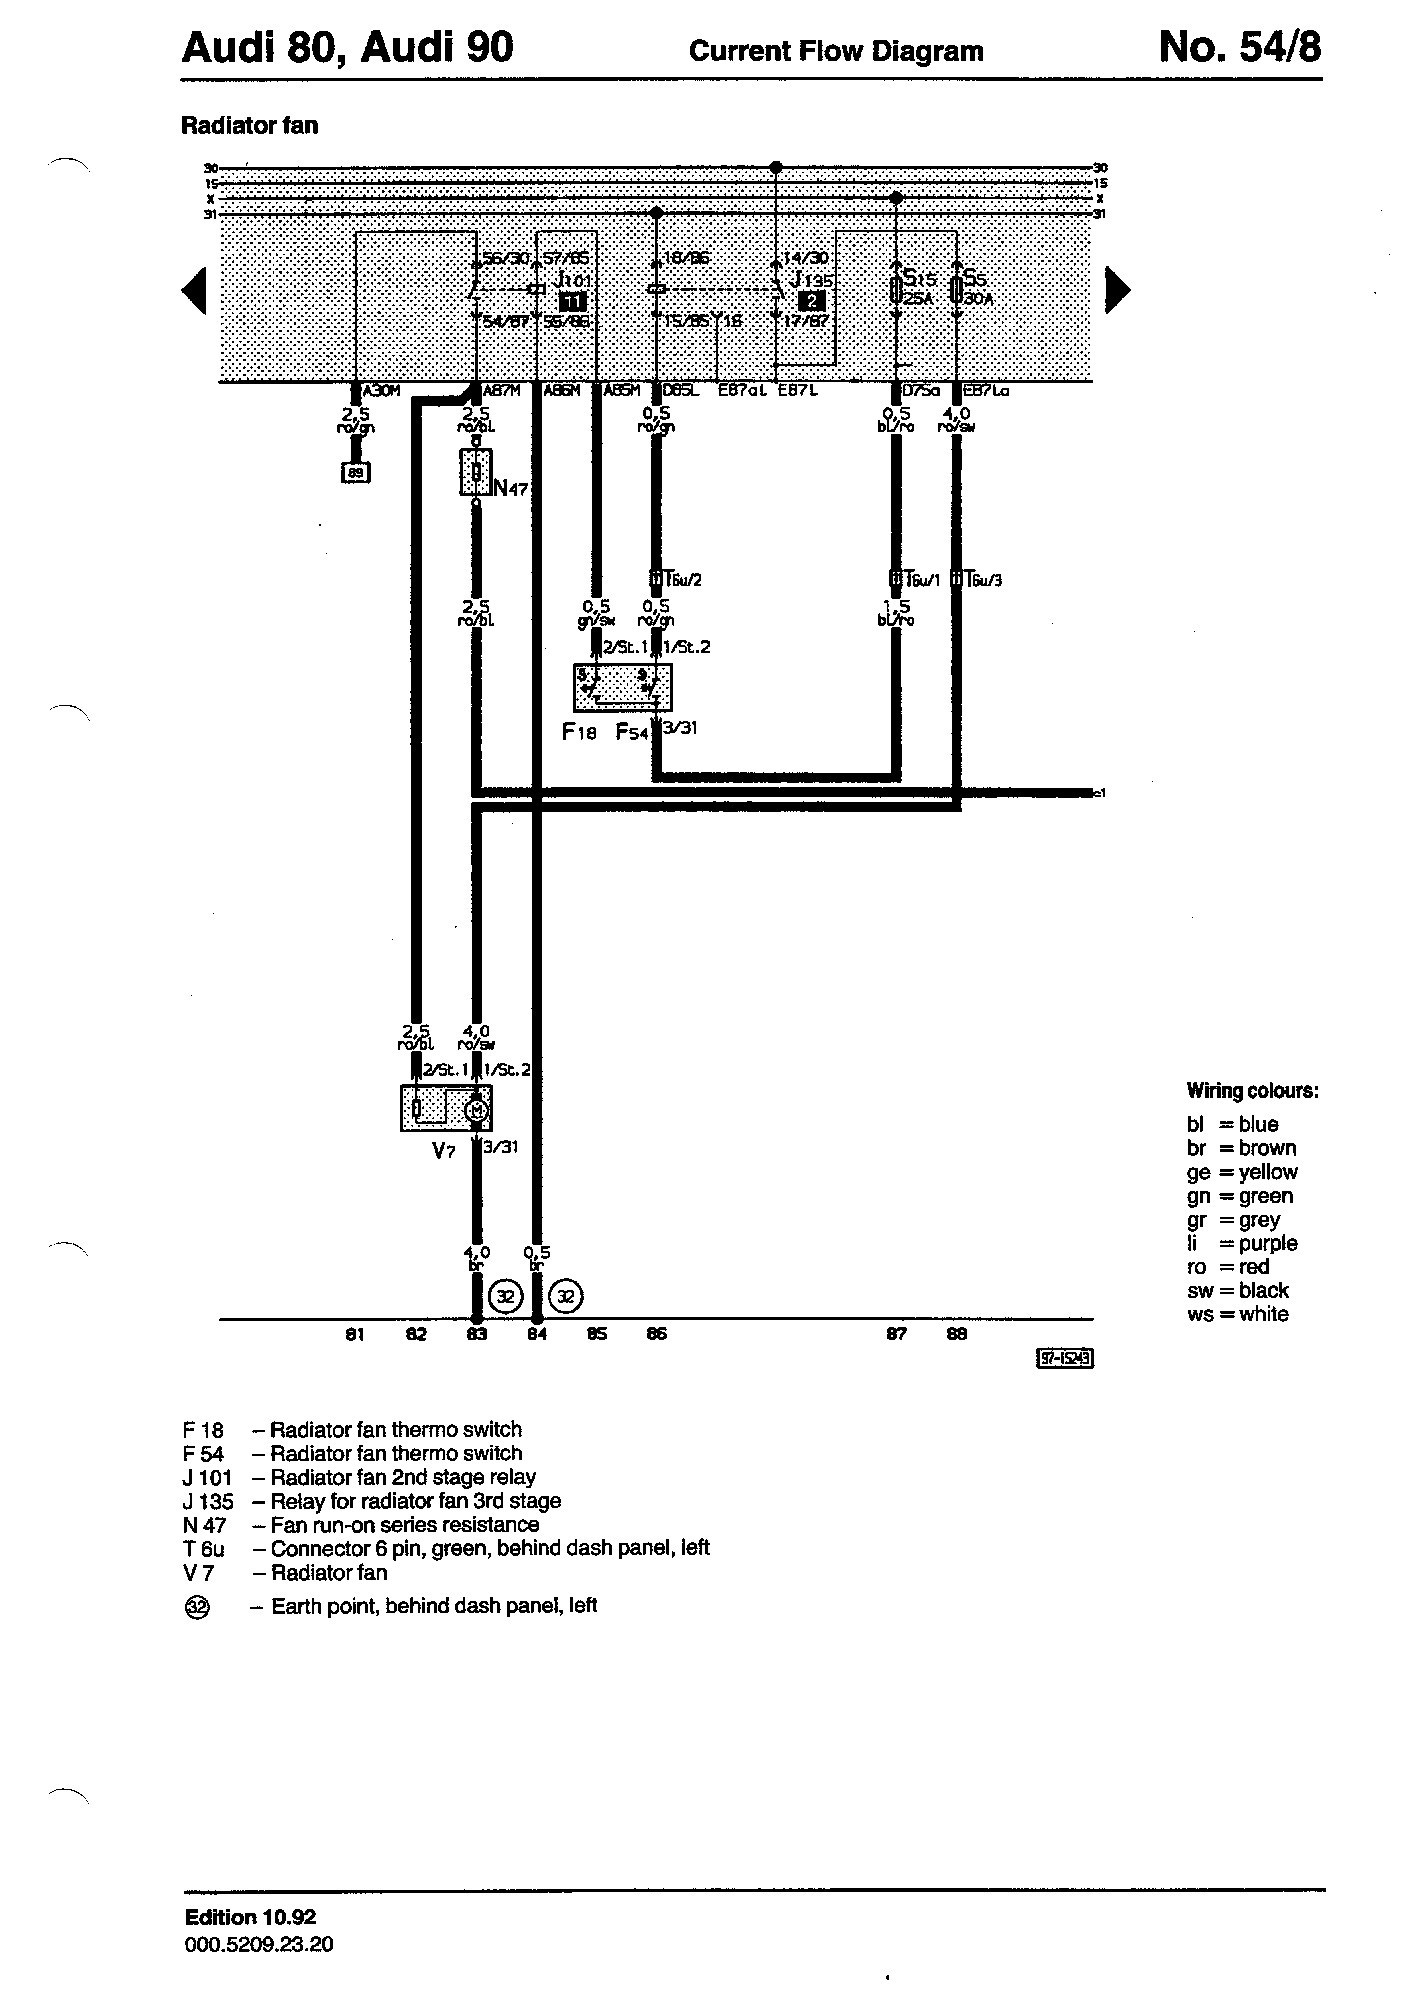 Electric Fan Relay Wiring Diagram Likewise Cooling How To Wire A New Magnificent Hvac Potential Of